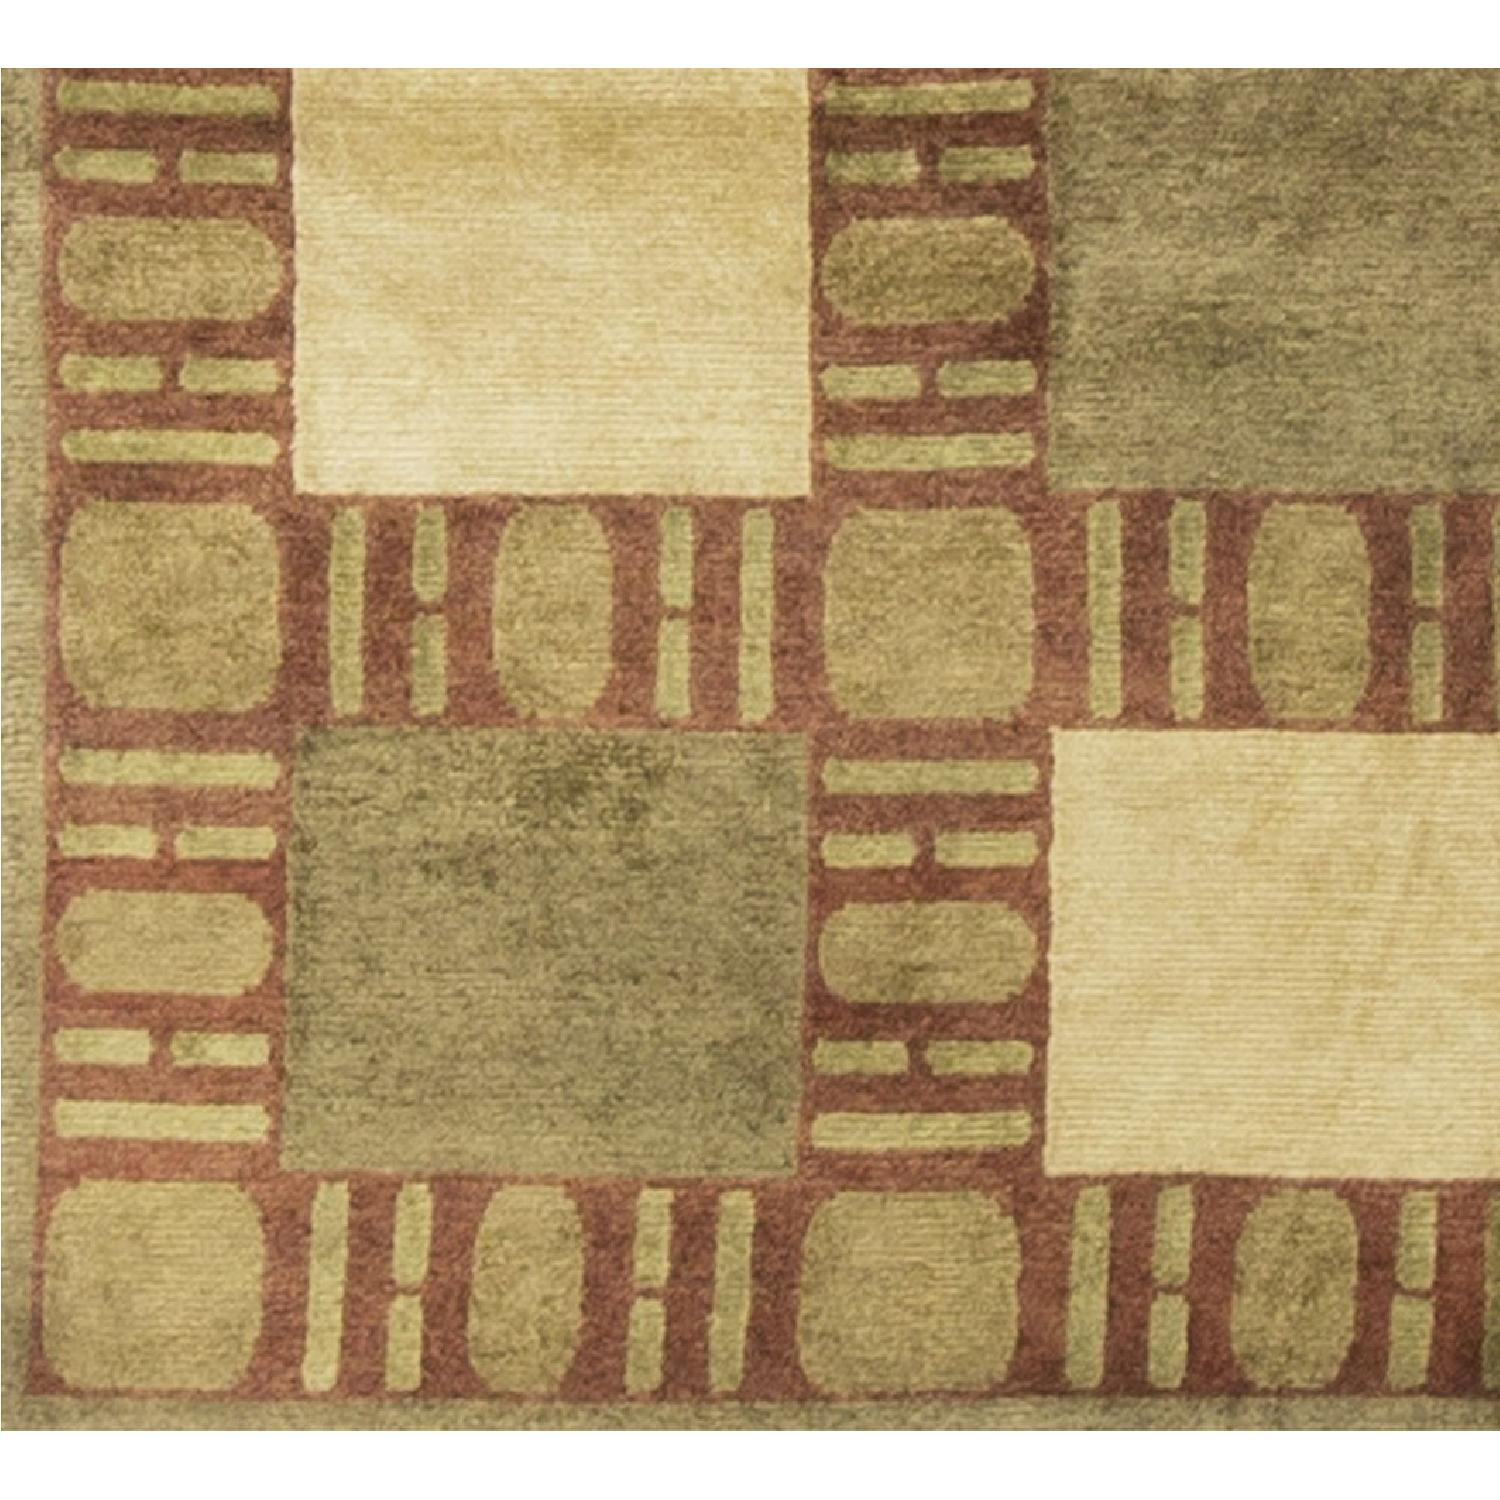 Modern Contemporary Hand Knotted Wool Rug in Gold/Red/Beige - image-2